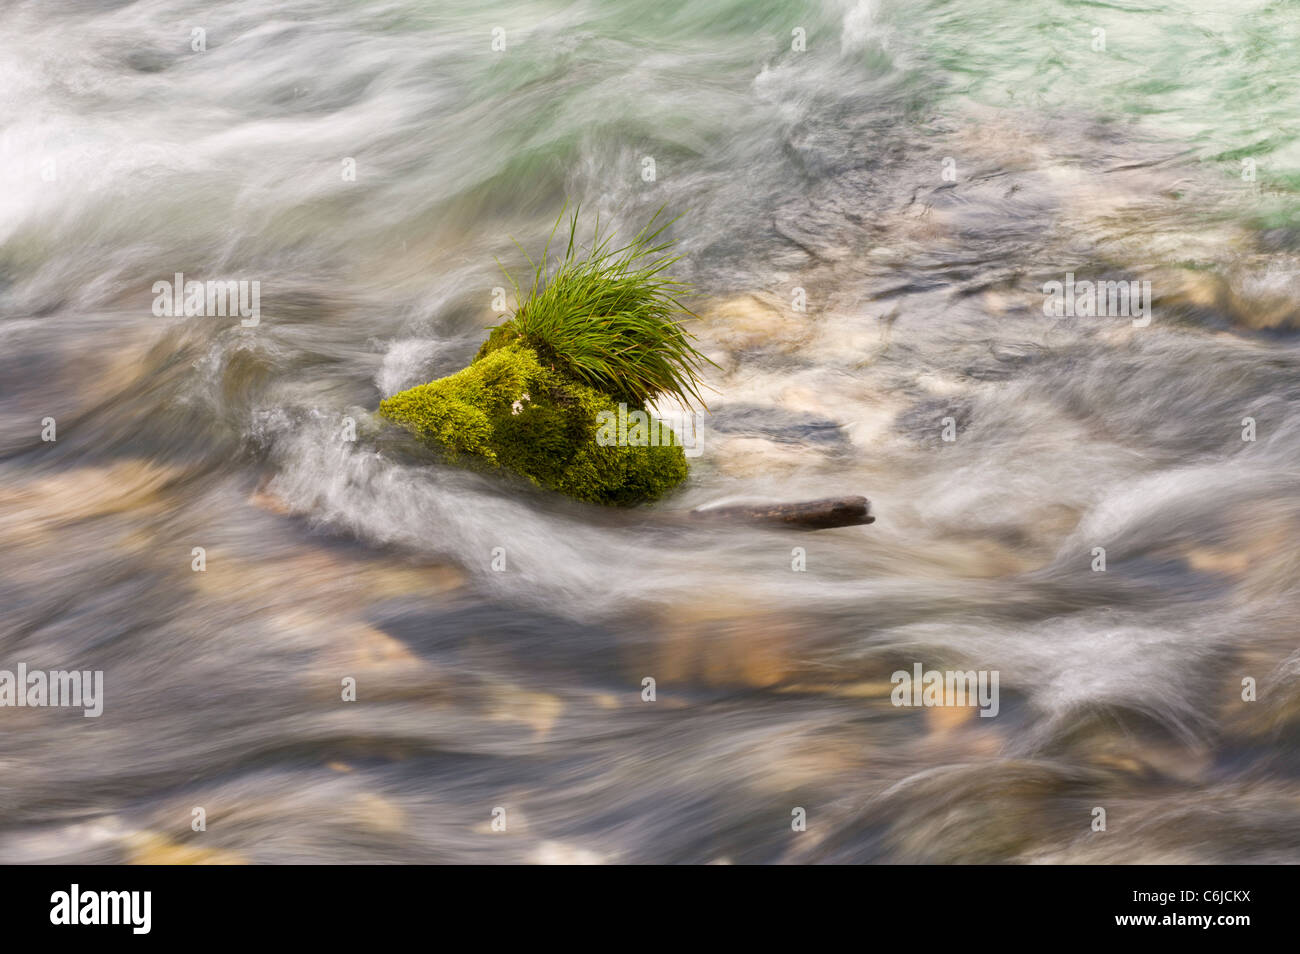 Mossy and grassy rock in clear flowing stream - Stock Image